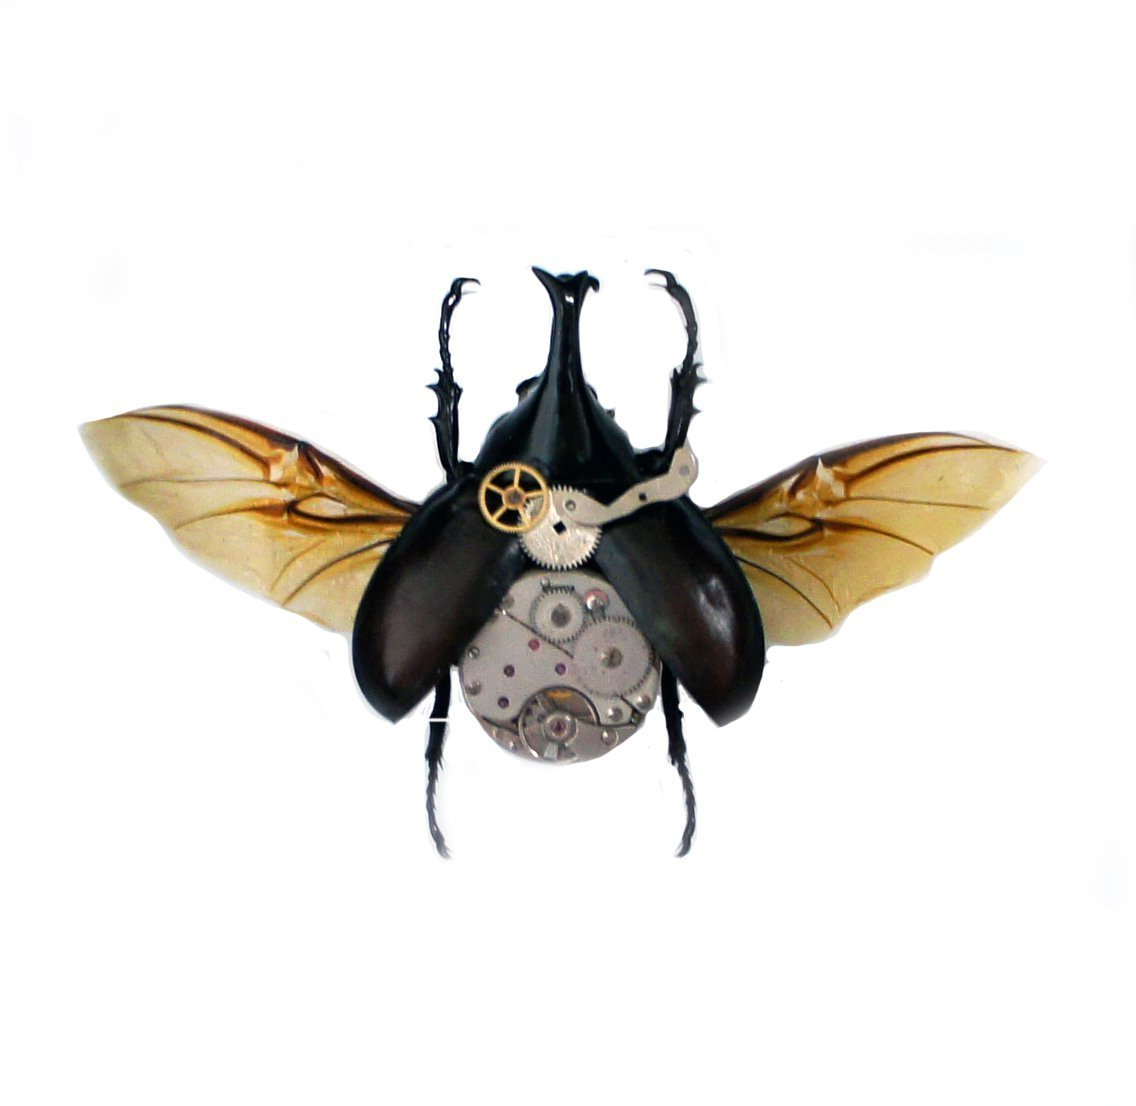 Real Steampunk Rhino Beetle Insect Taxidermy Display Shadow Box 3